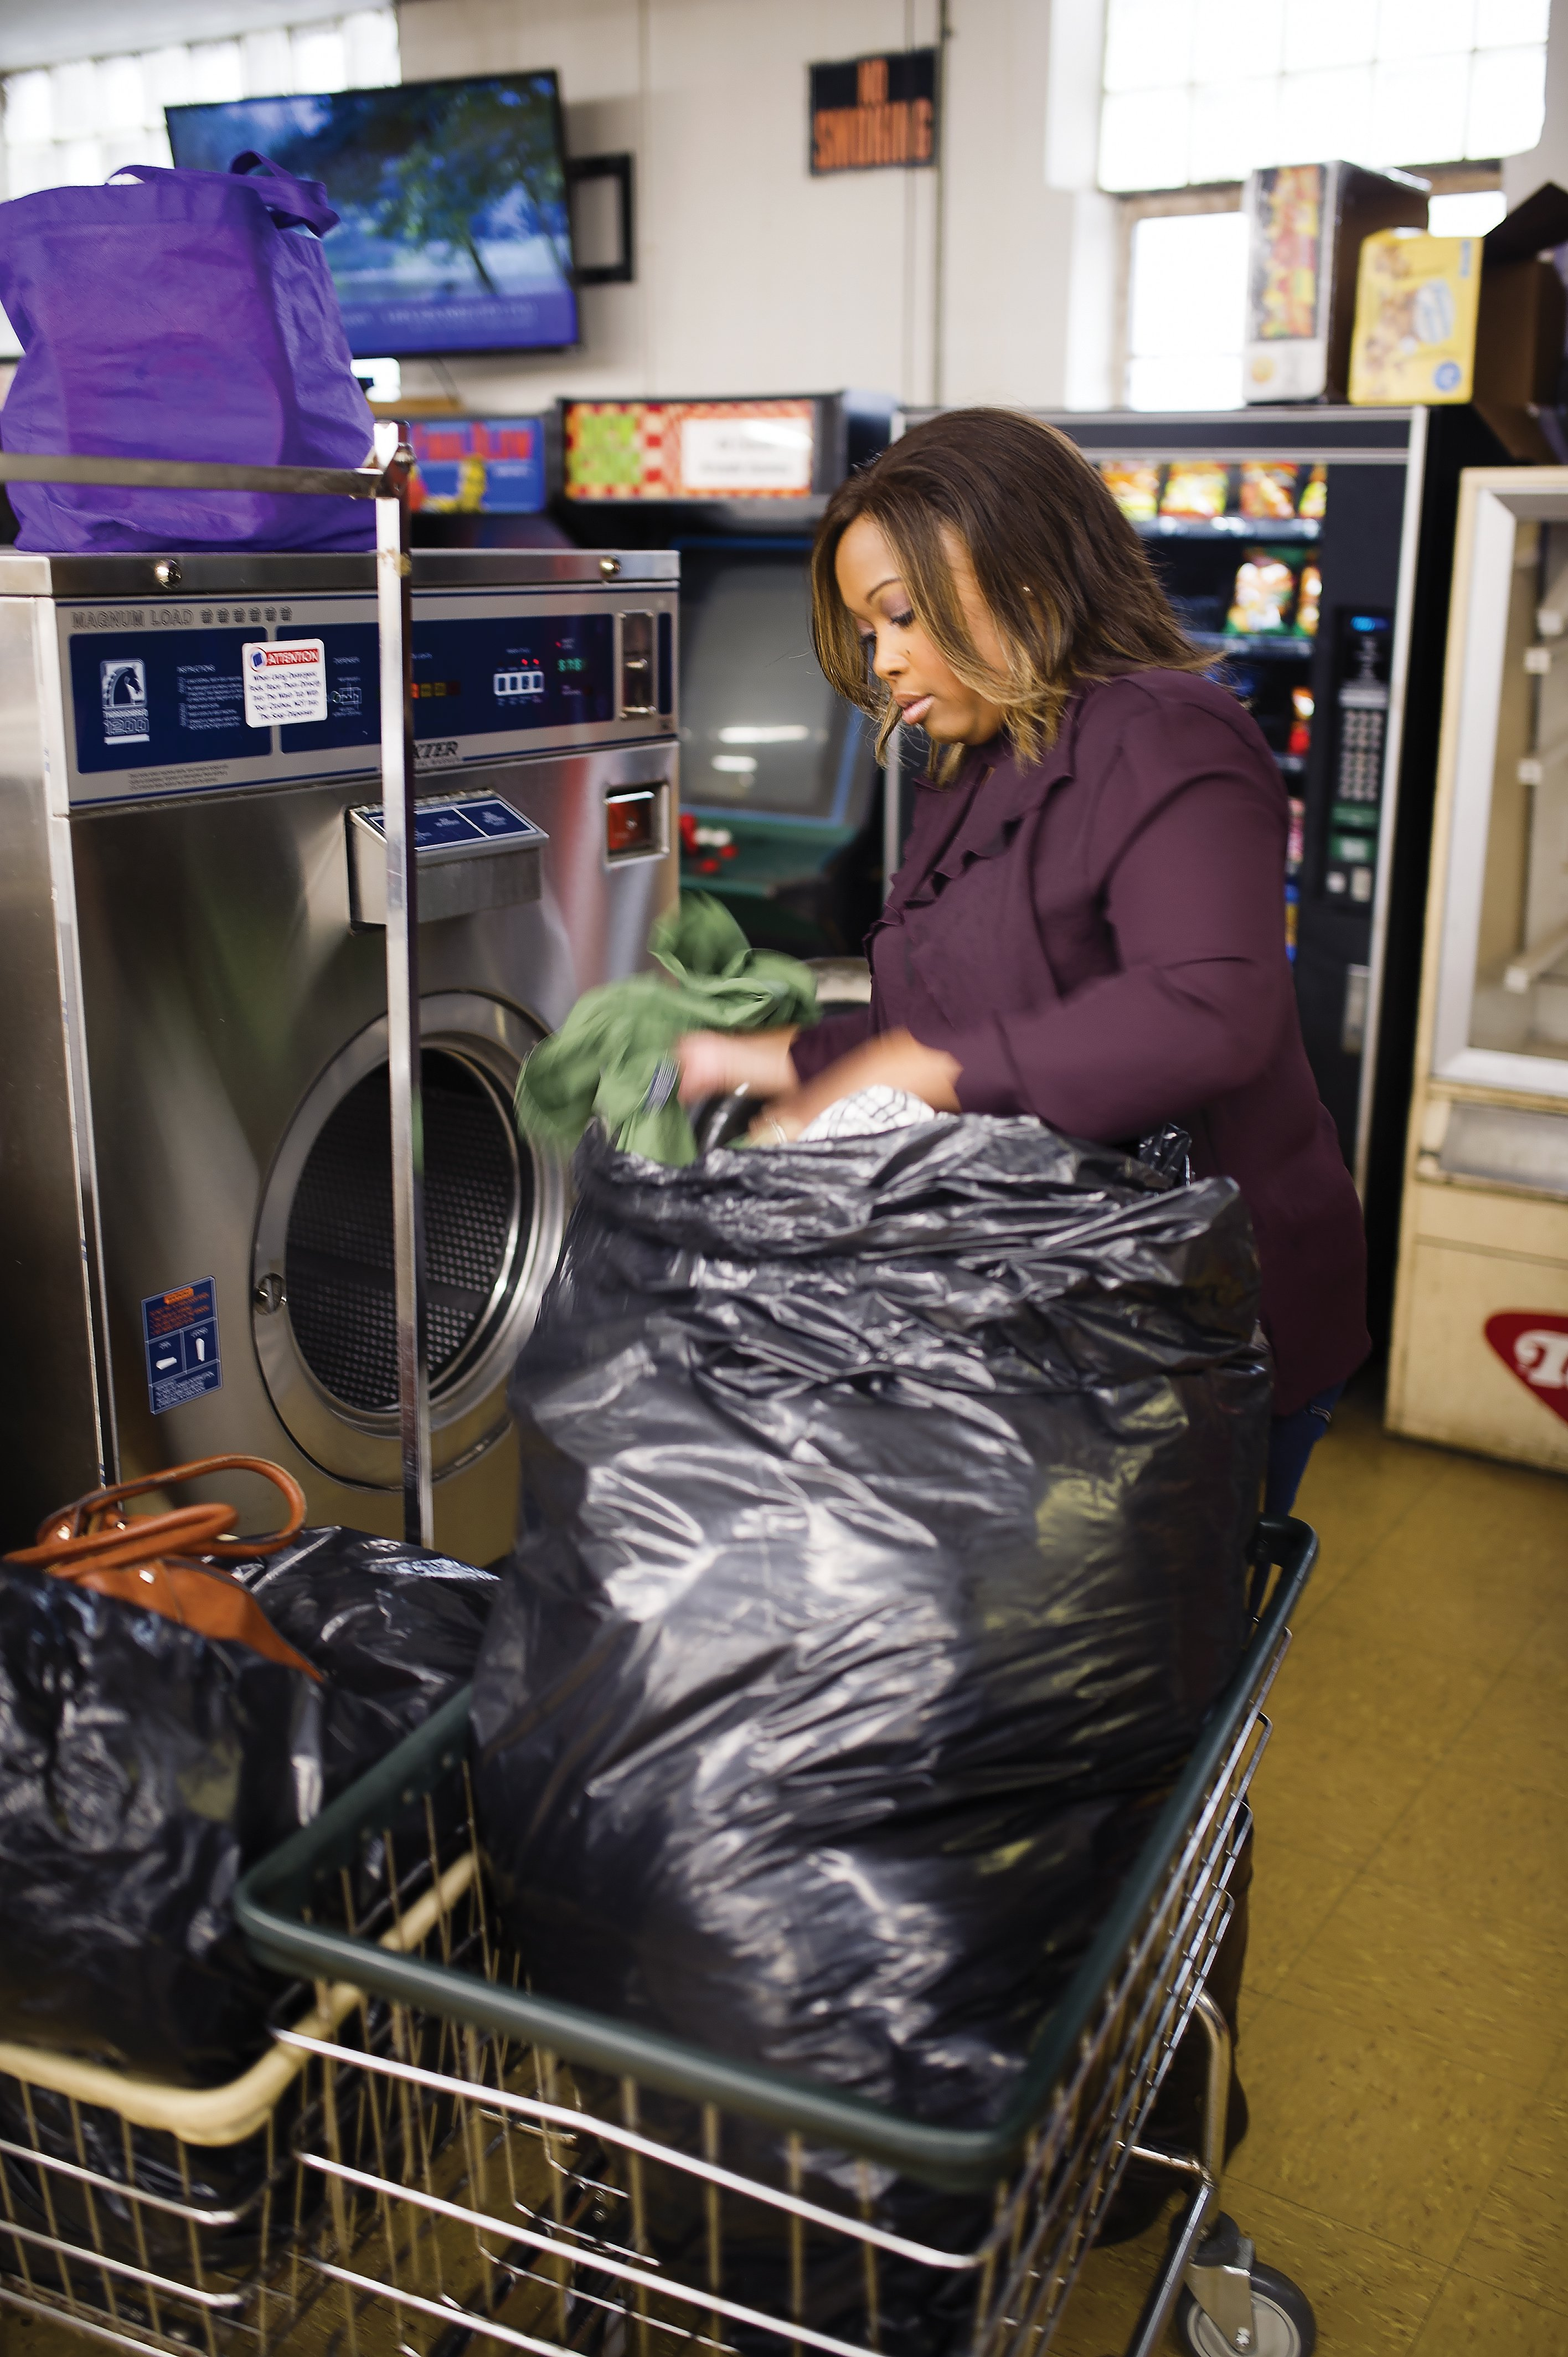 This ministry is easing burdens, one load of laundry at a